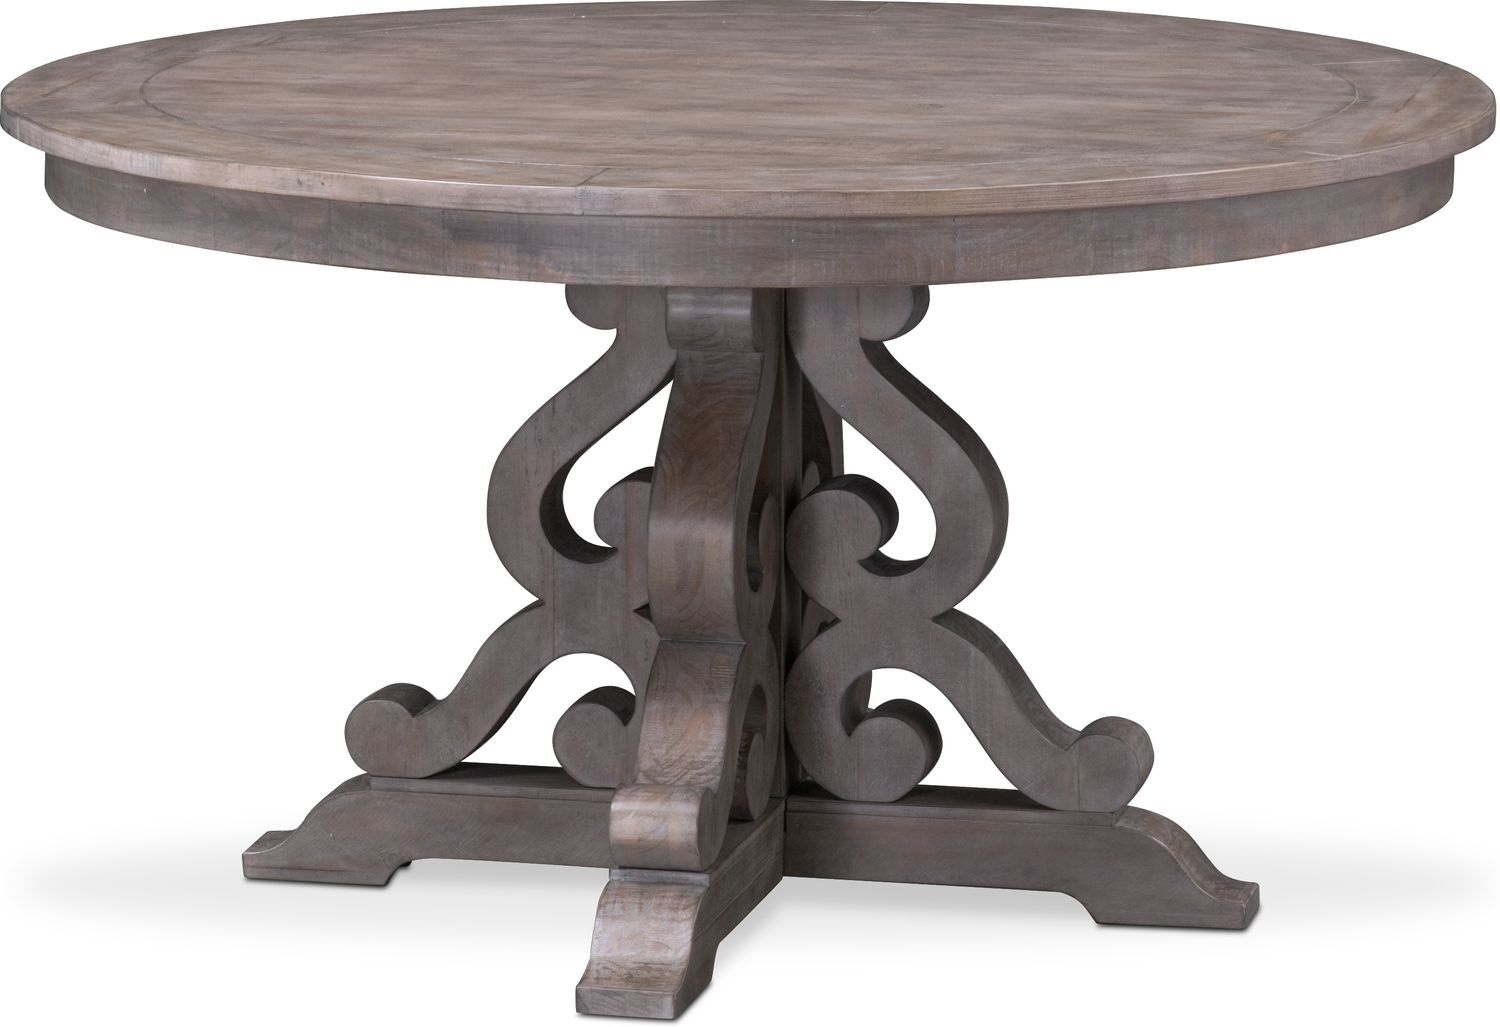 Charthouse round dining table gray